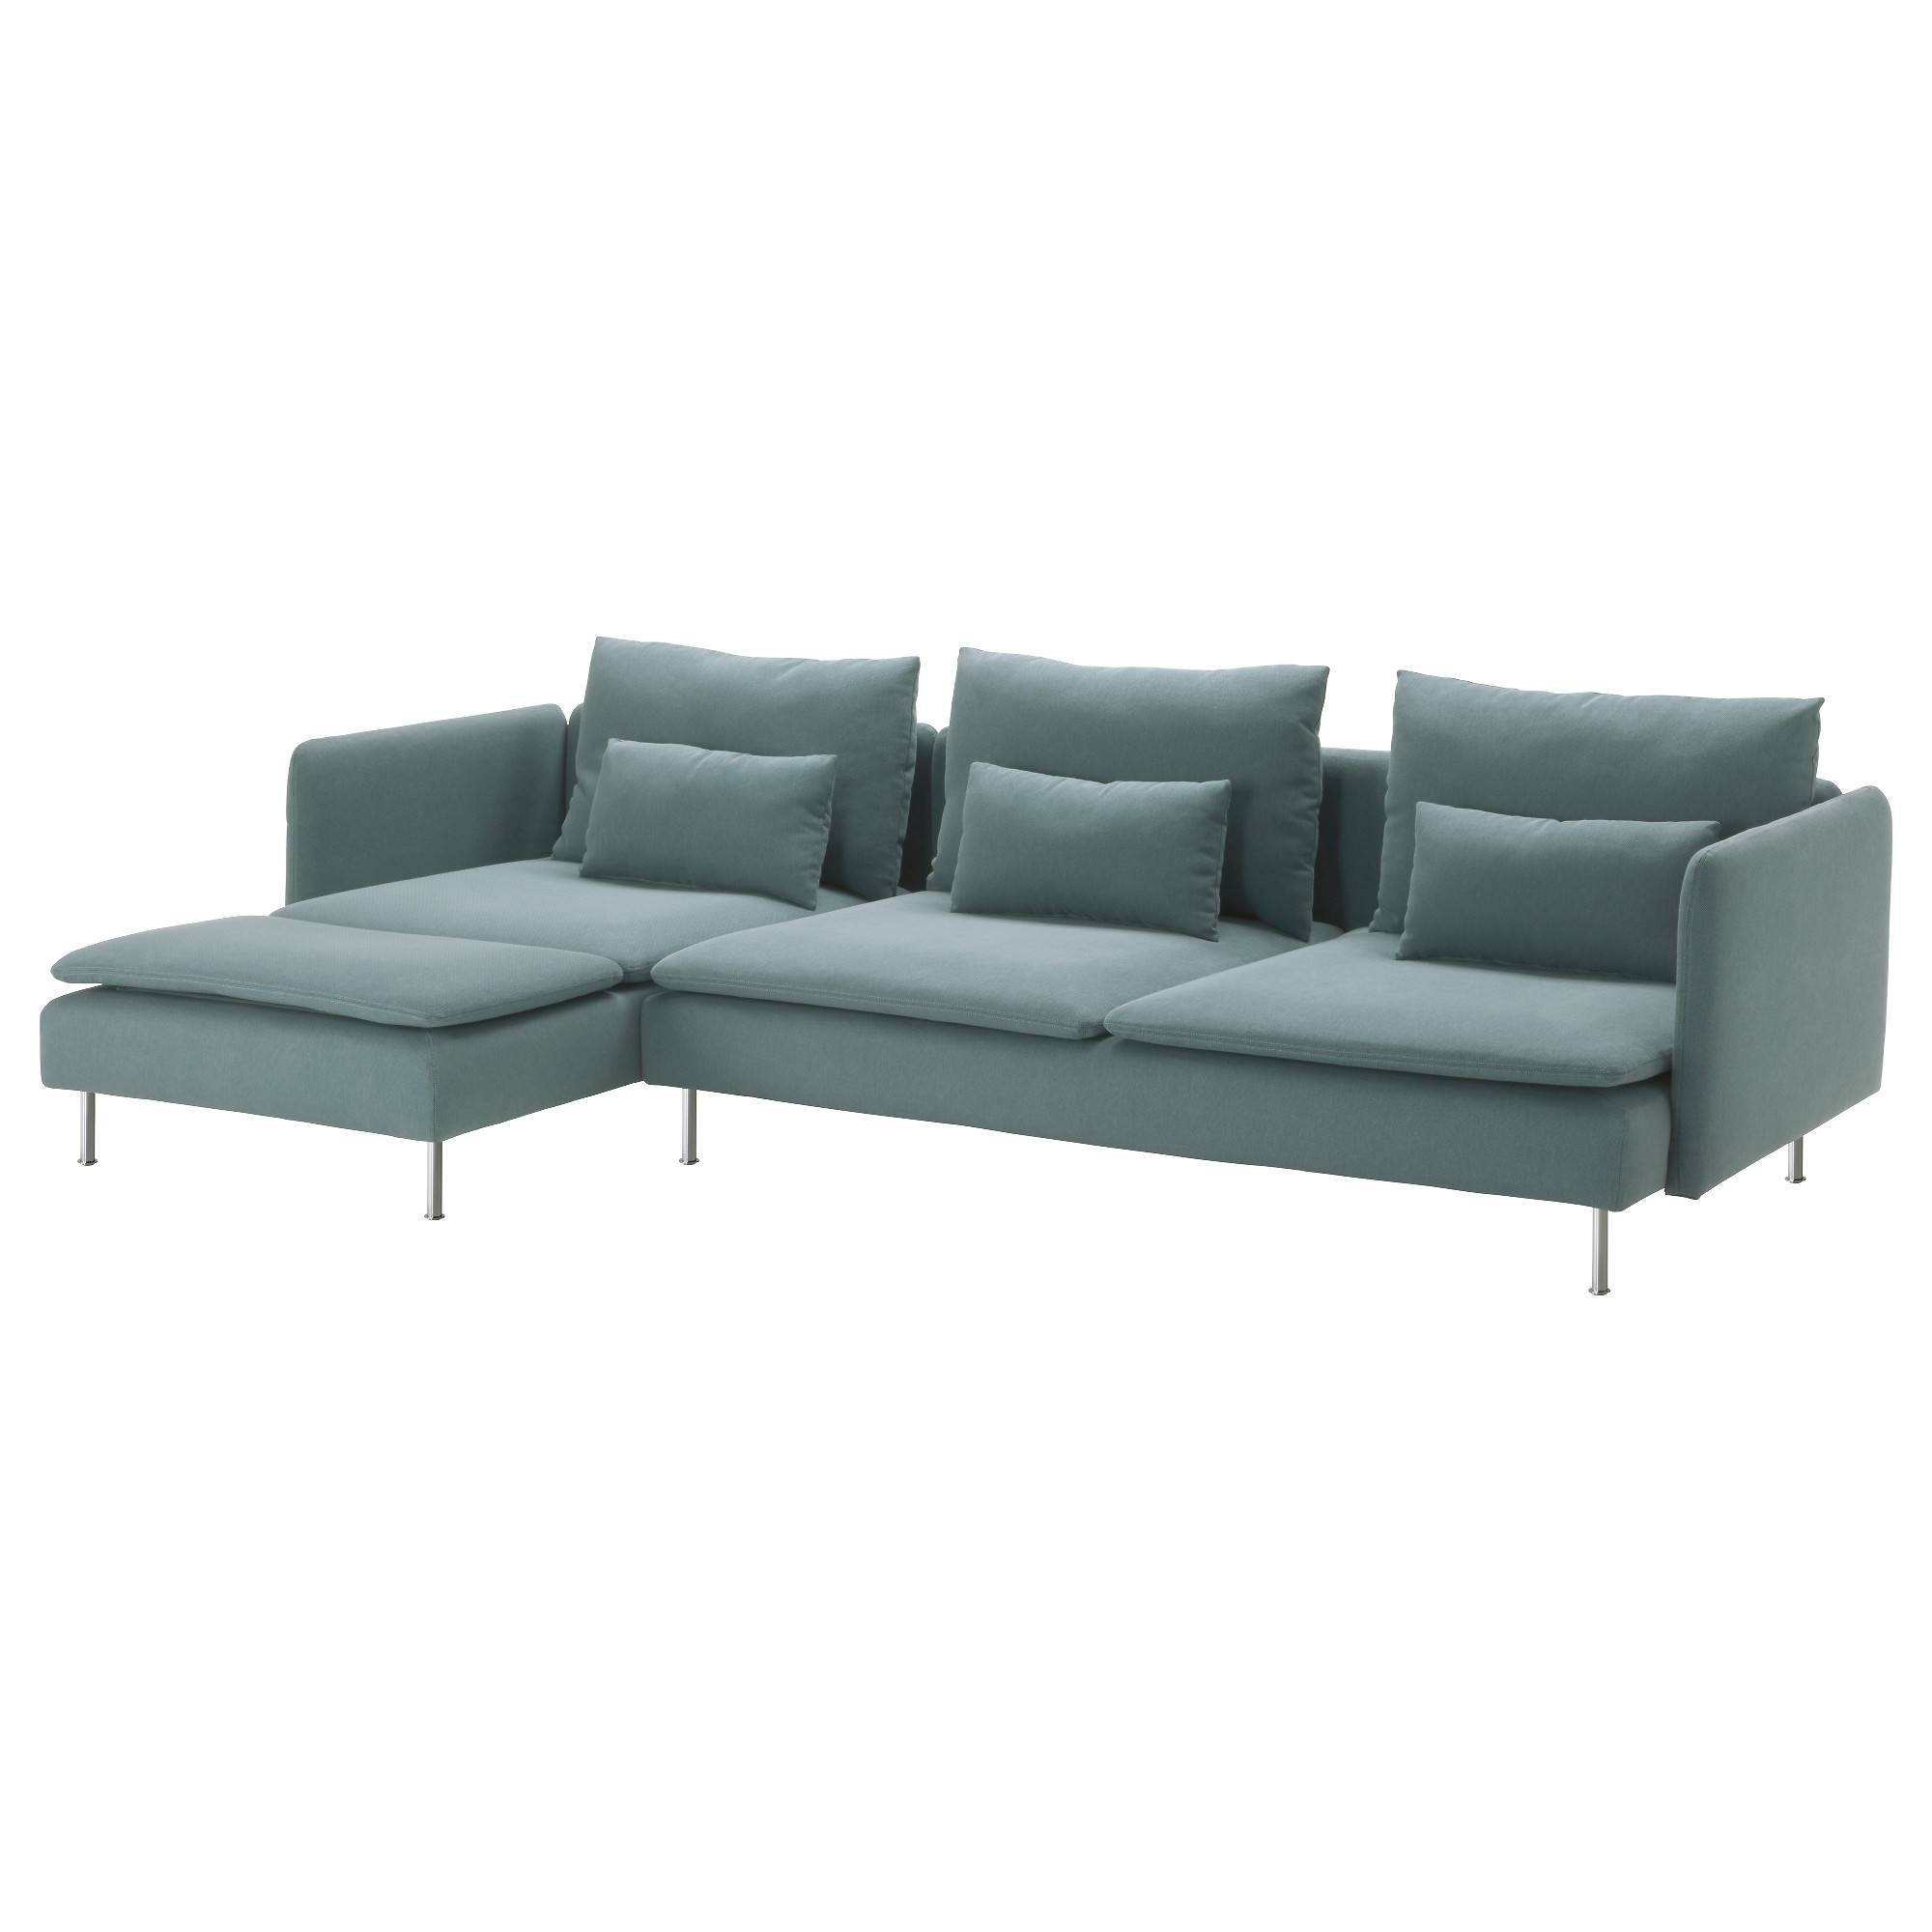 Sectional Sofas & Couches - Ikea within Small Sectional Sofa (Image 18 of 30)